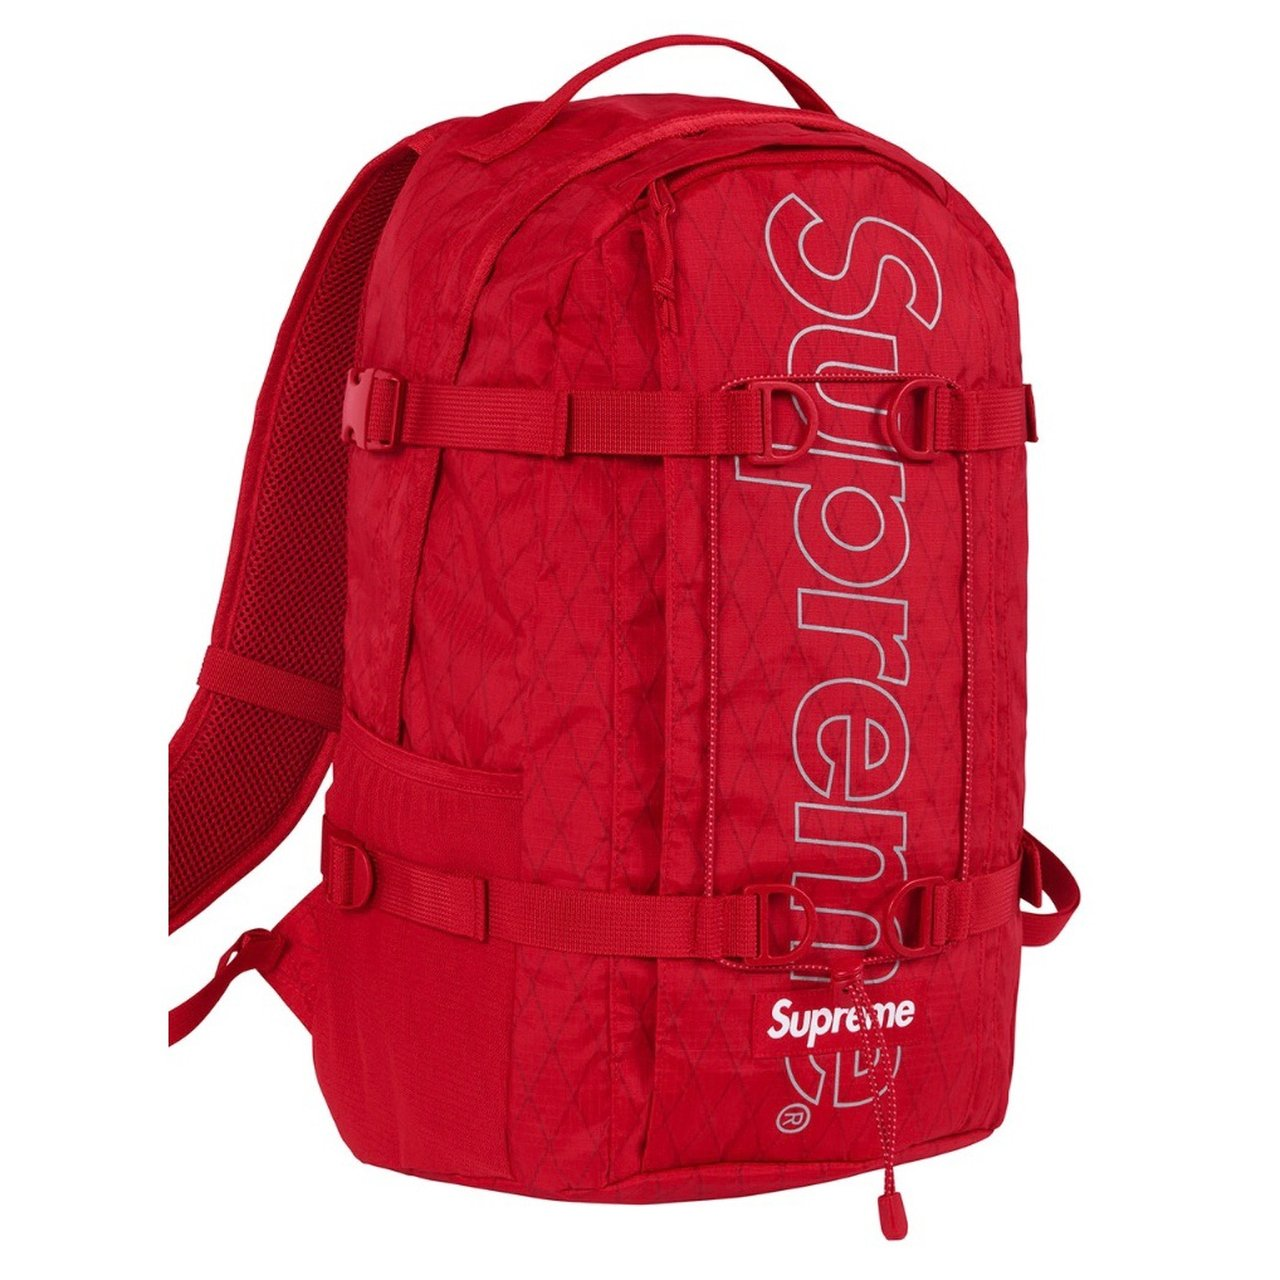 bd7831a9674 Supreme Backpack (FW18) Red - NEW Authentic! Brand new from - Depop